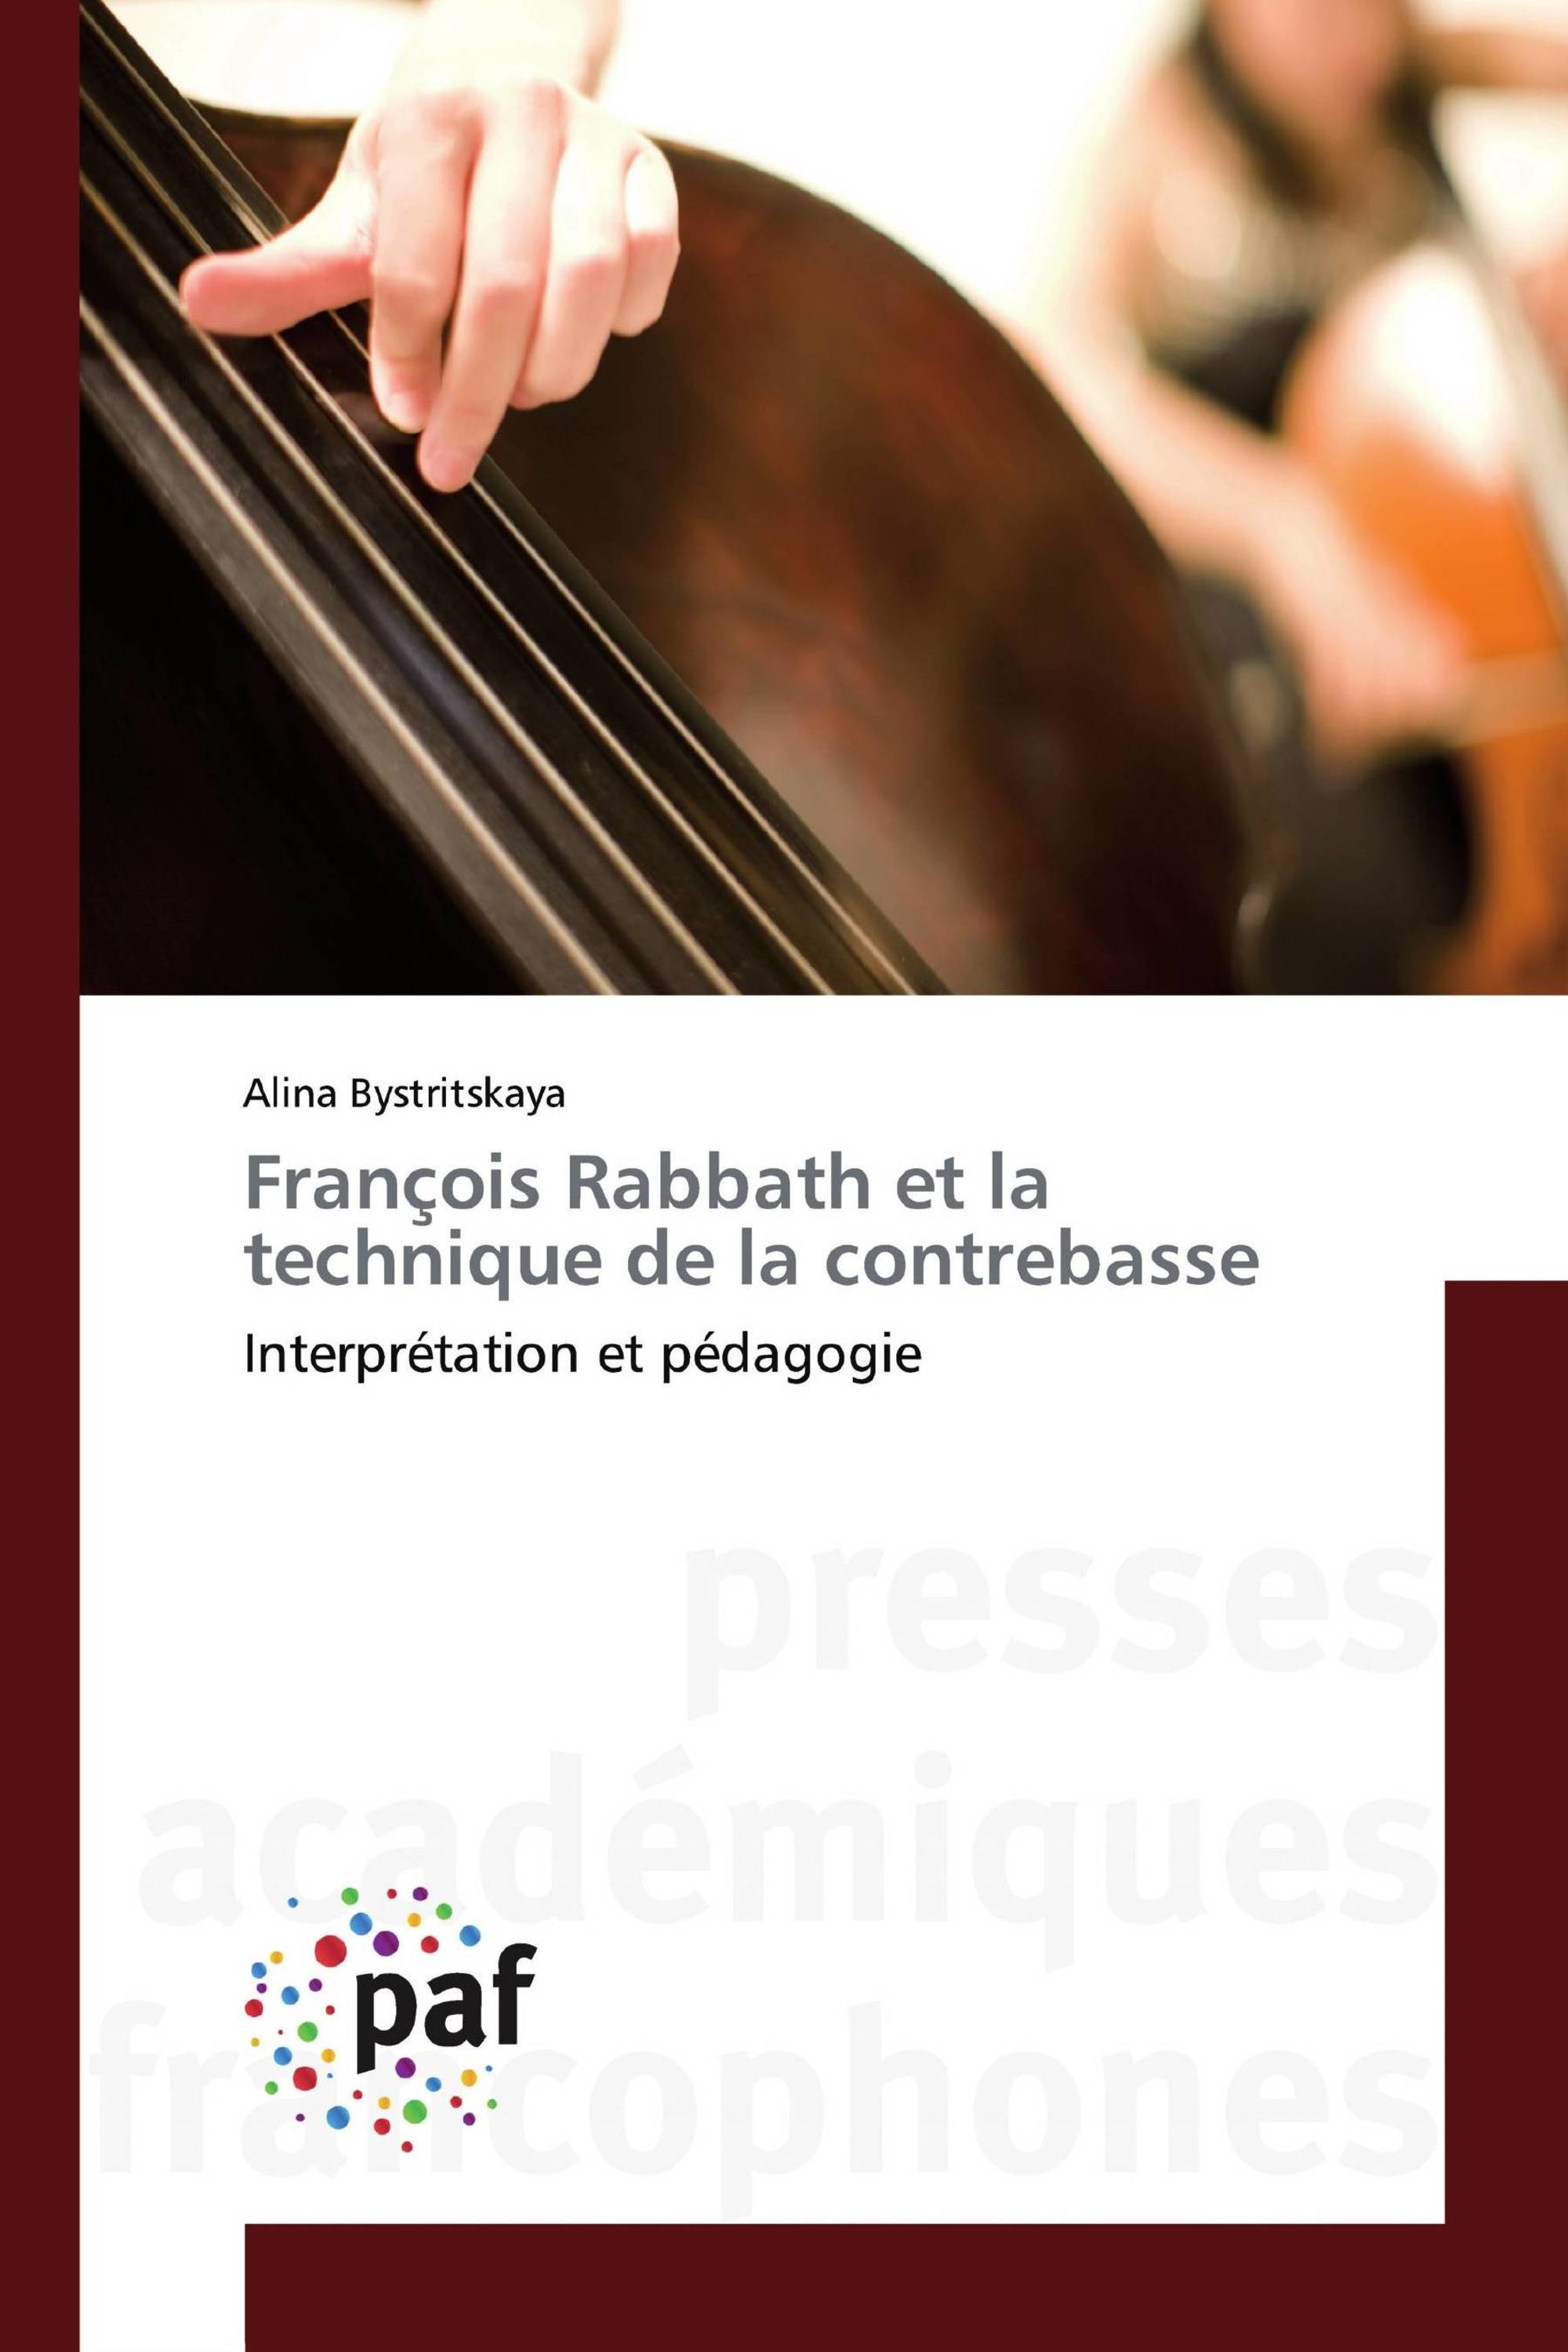 François Rabbath et la technique de la contrebasse